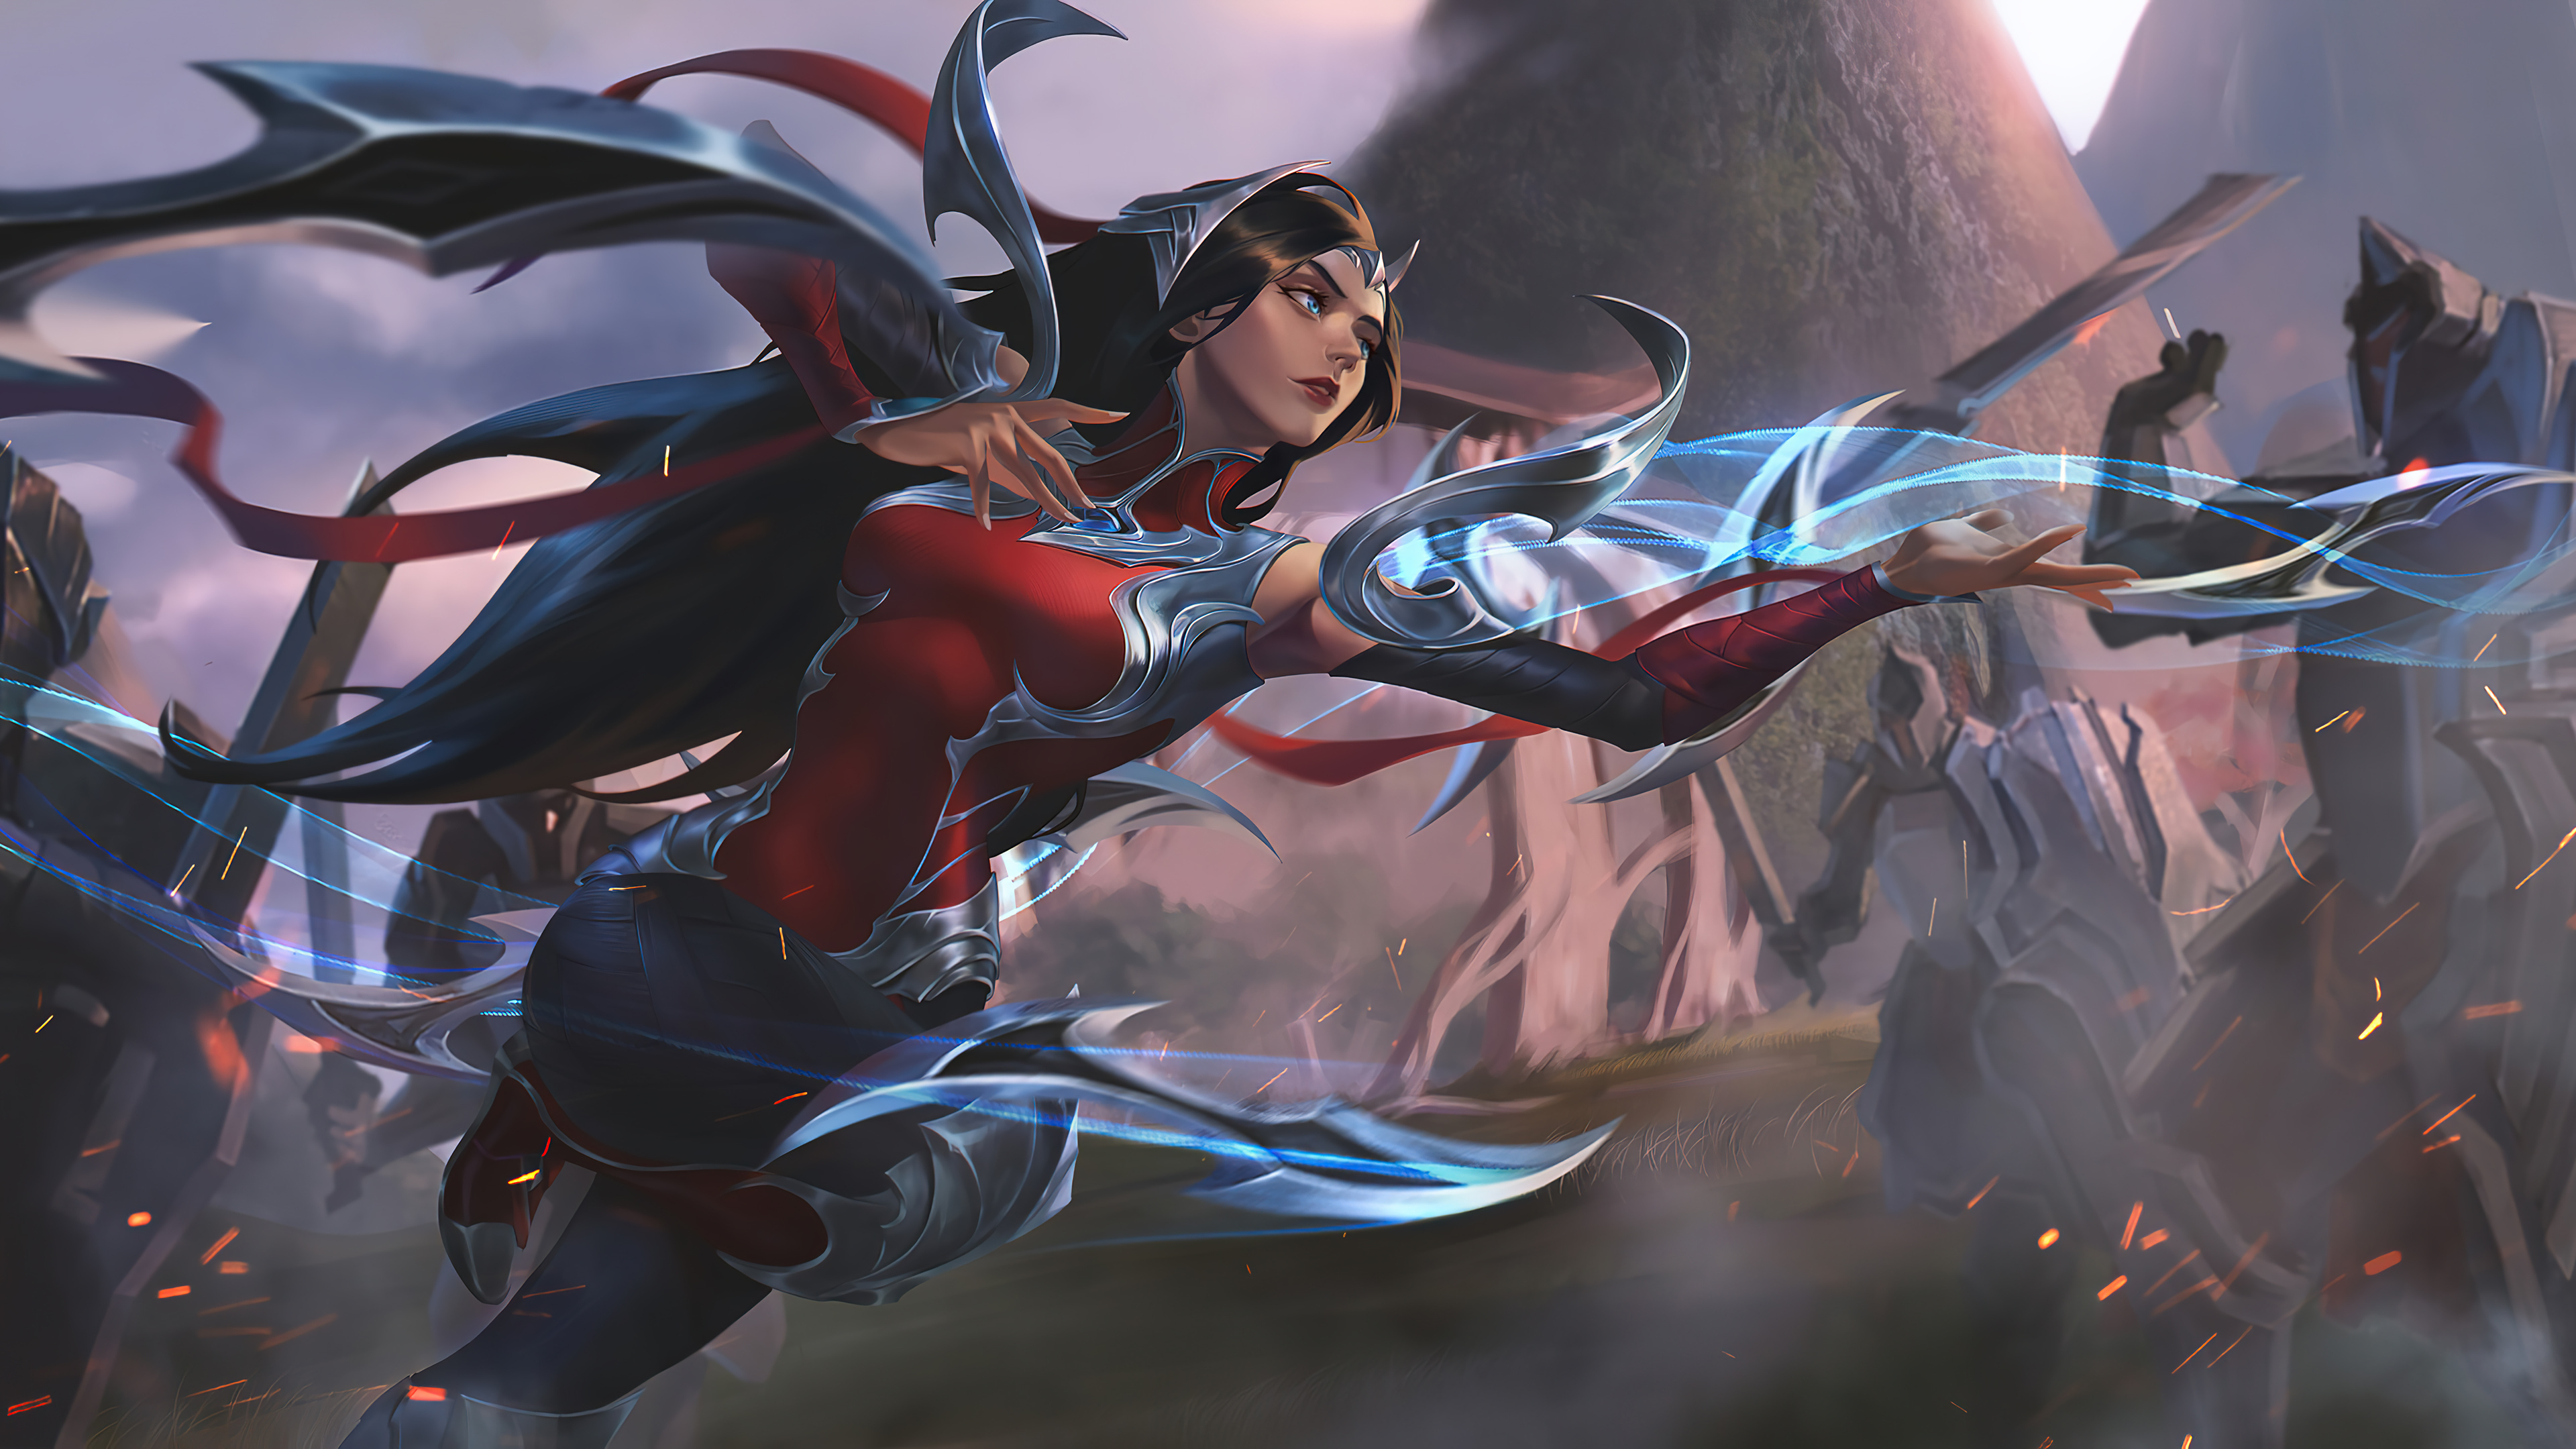 Fondos de pantalla Irelia League of Legends